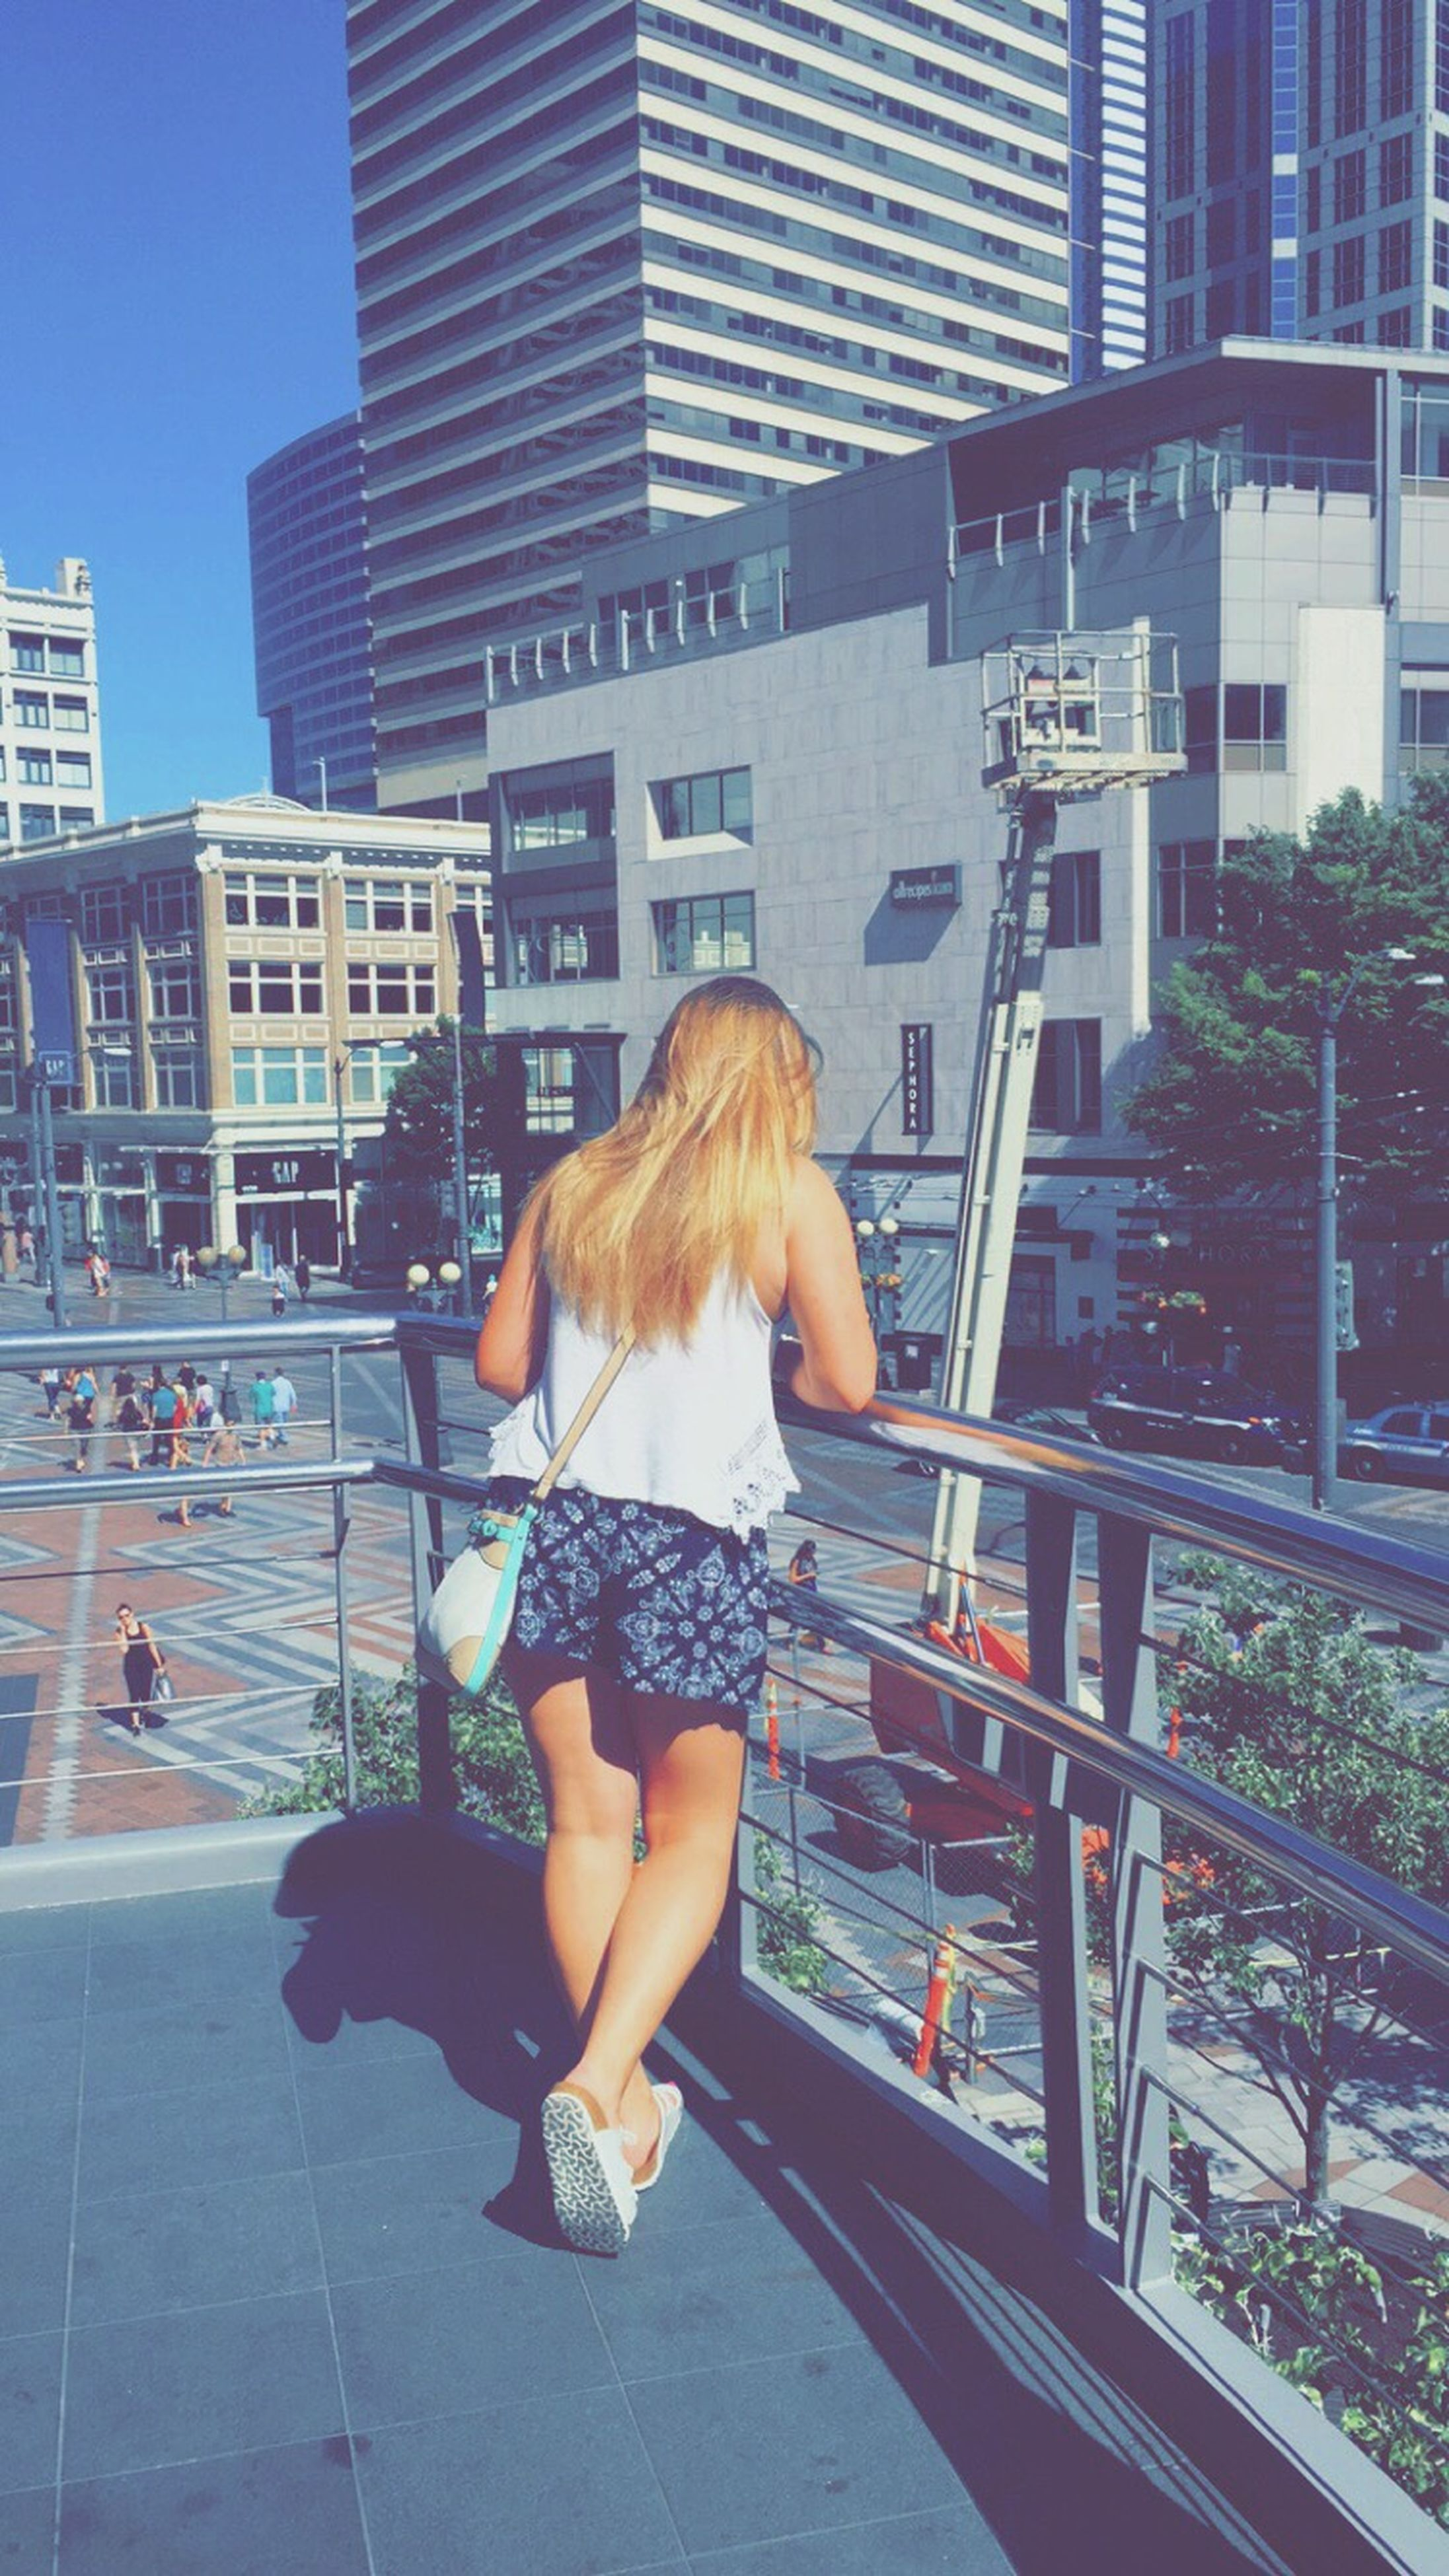 building exterior, lifestyles, architecture, leisure activity, built structure, city, full length, casual clothing, person, rear view, city life, water, young adult, young women, sitting, standing, outdoors, men